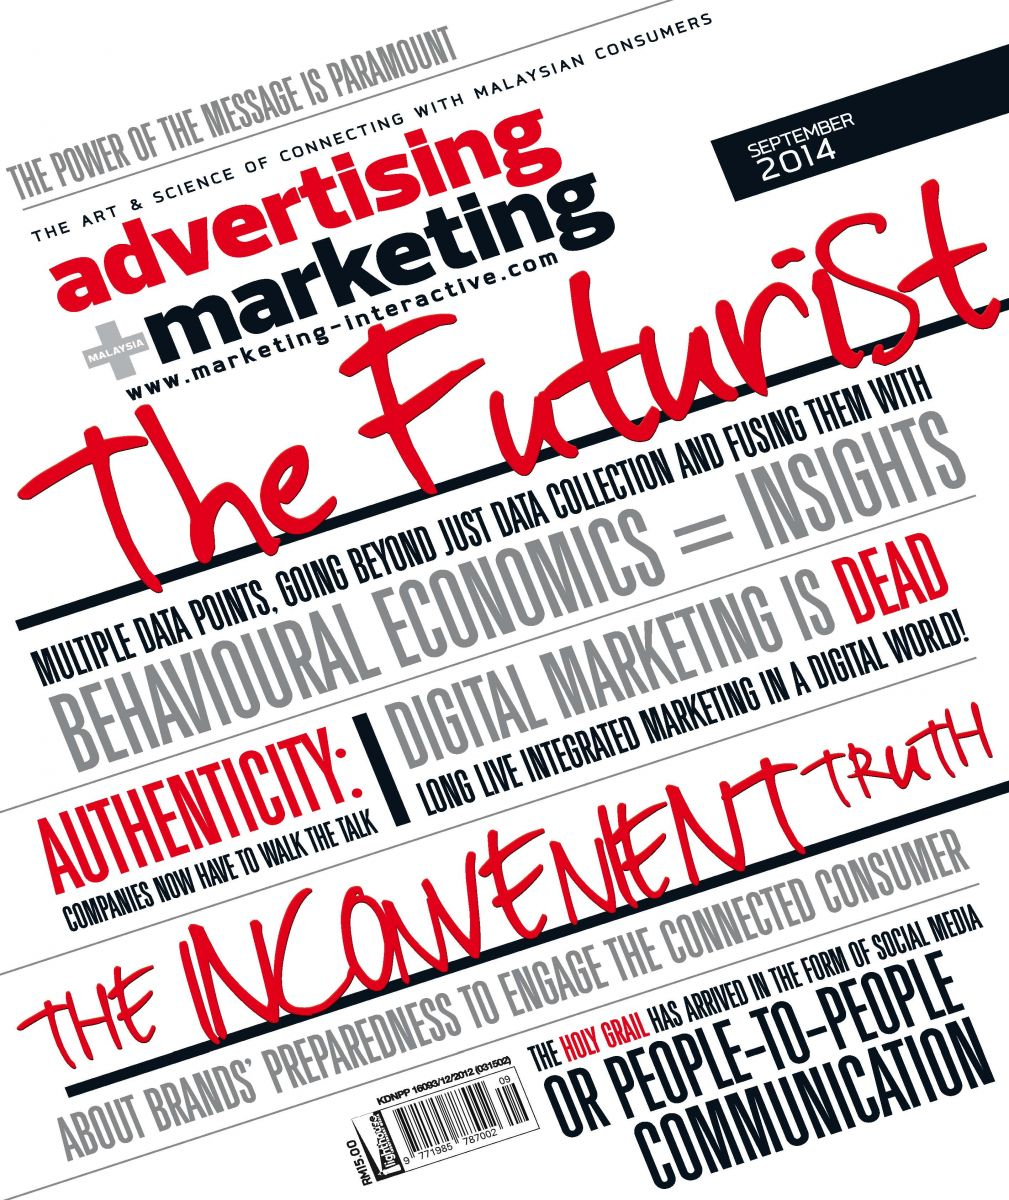 Advertising + Marketing Magazine Front Cover